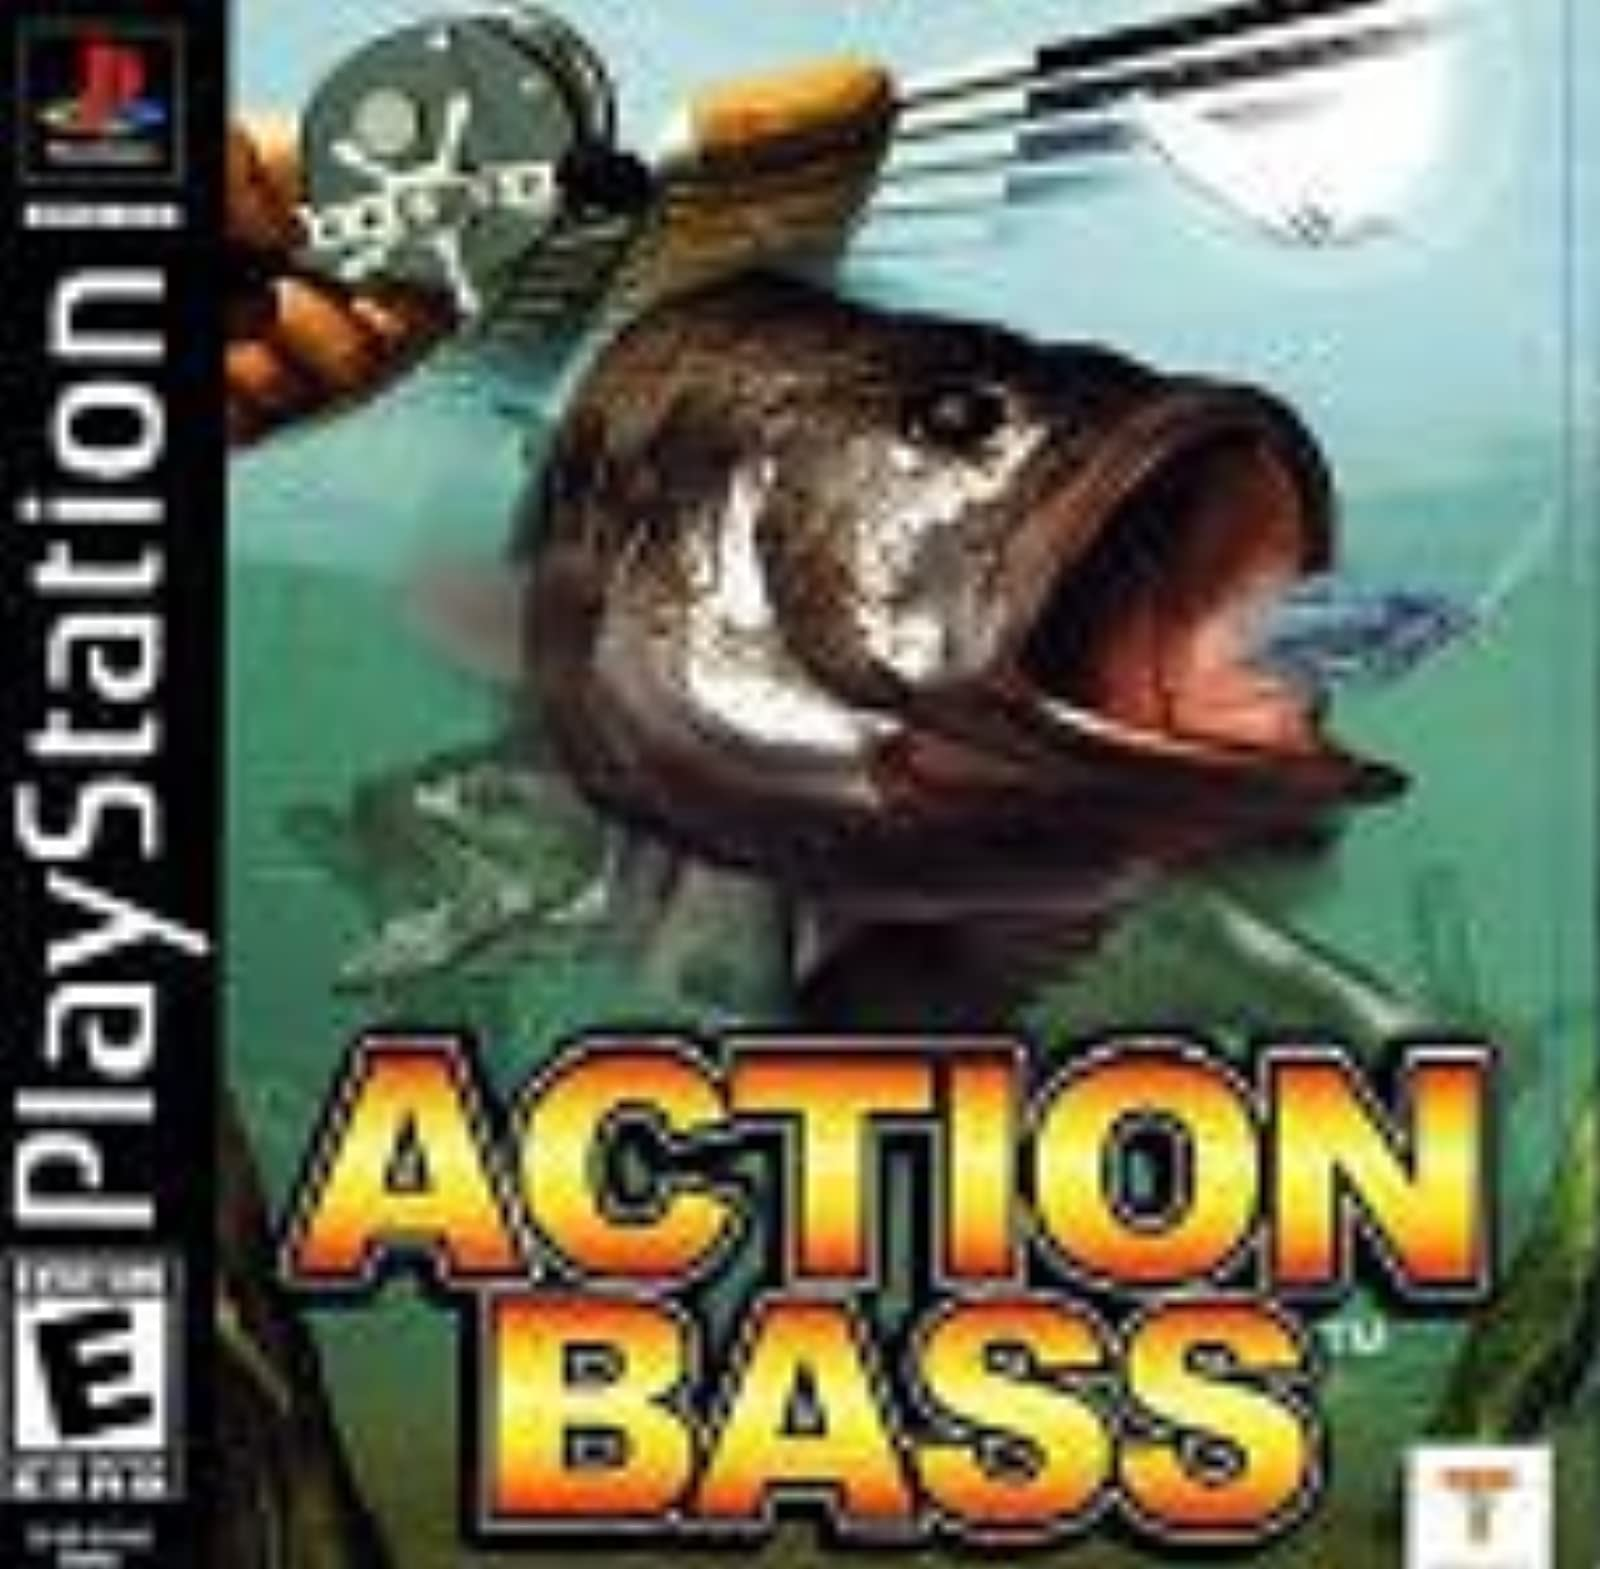 Action Bass PS1 For PlayStation 1